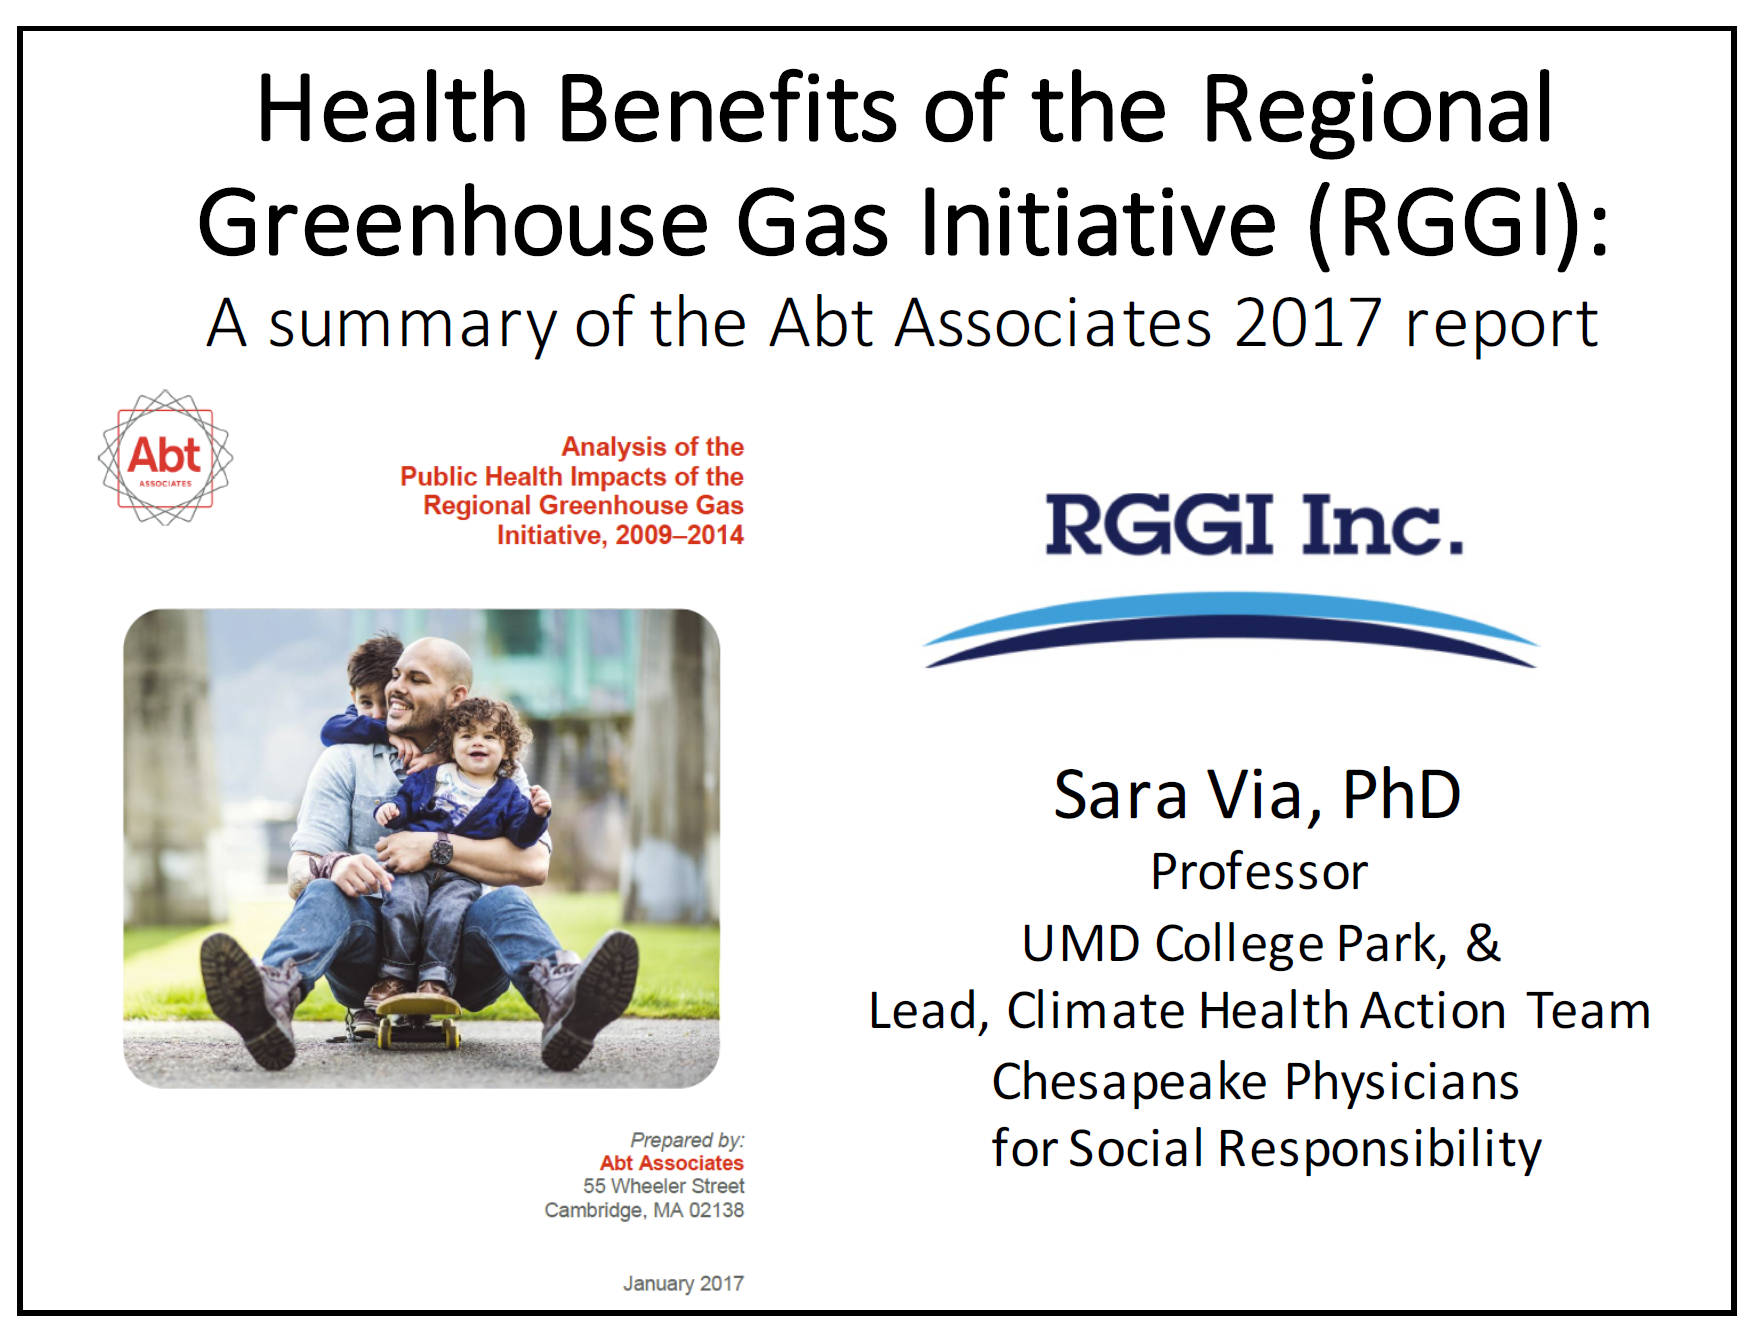 Health Benefits of the Regional Greenhouse	Gas Initiative (RGGI): Summary of 2017 report